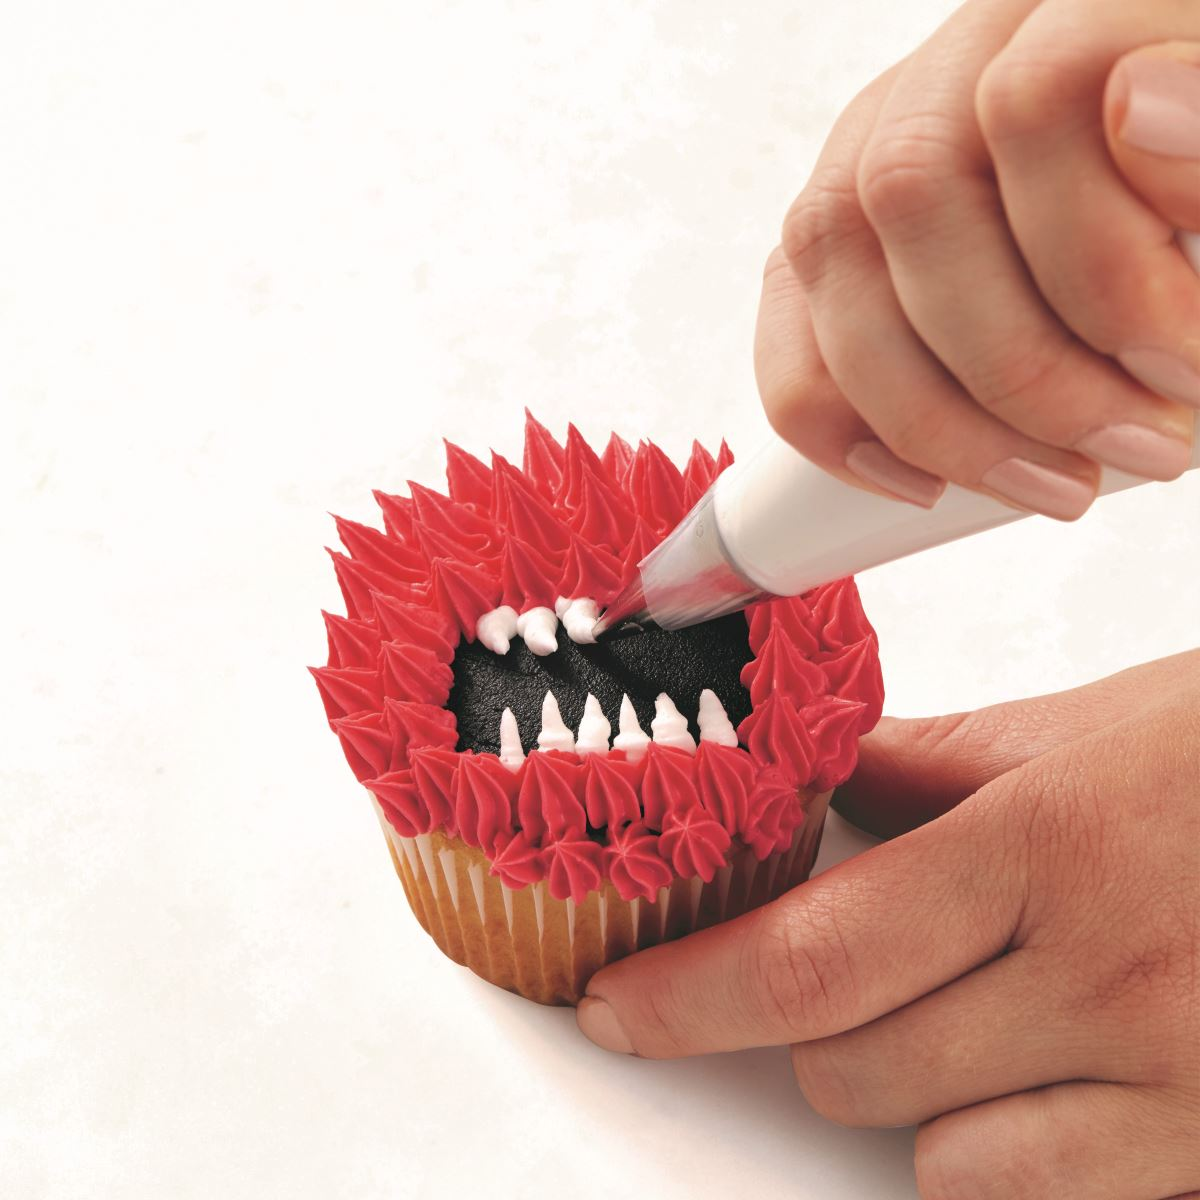 PINK ONE-EYED MONSTER CUPCAKE step 4